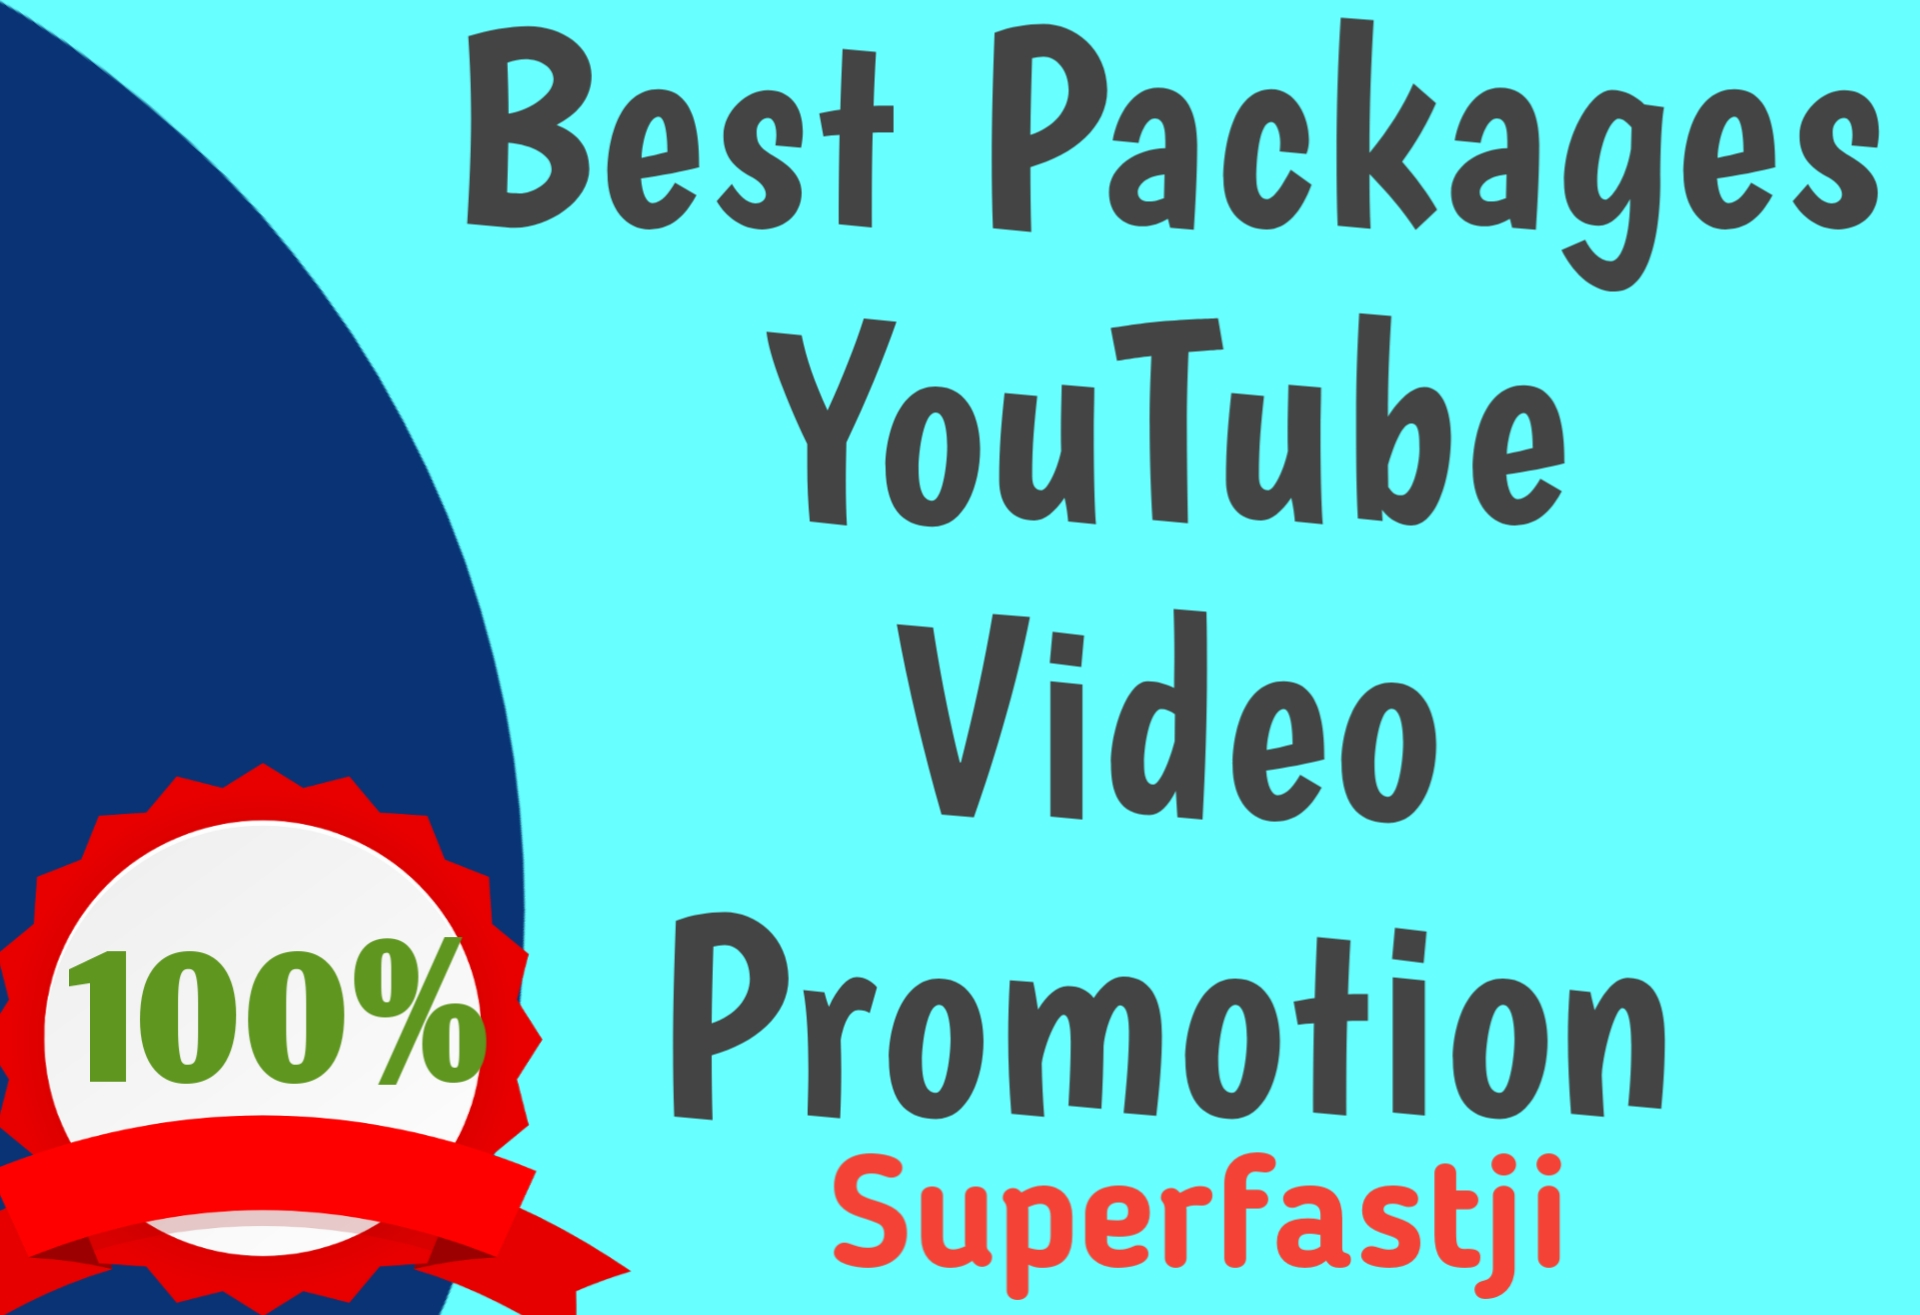 Package for YouTube Video Promotion Faster Work